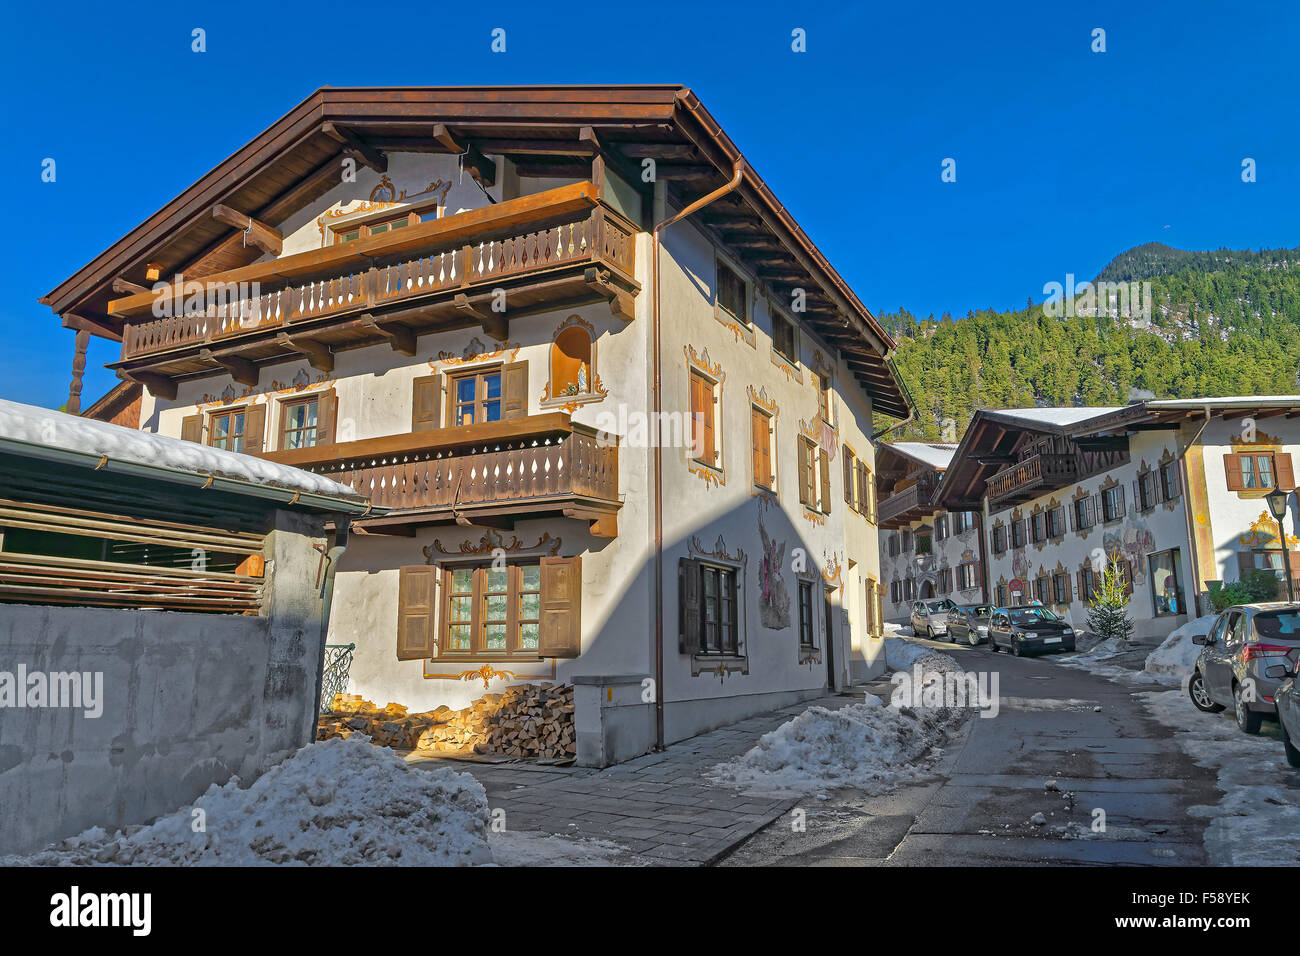 Cozy street in Bavarian Village Garmisch-Partenkirchen (Germany), on a sunny winter day. It is a tourist and winter - Stock Image